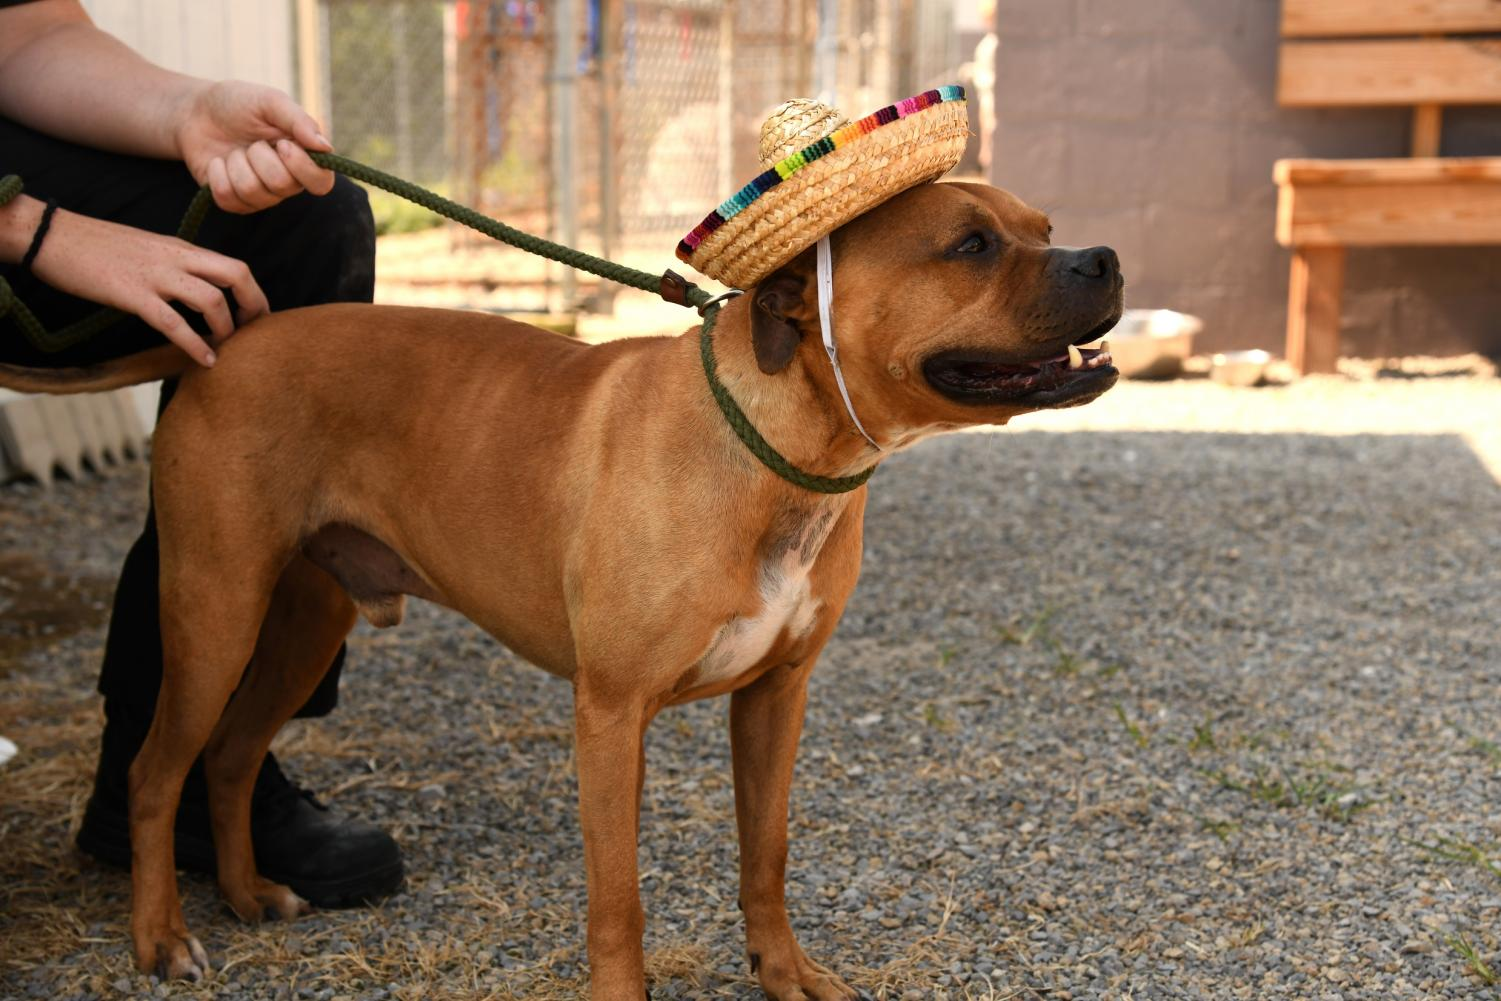 Taco, a male boxer-mix, was taken in by the adoption center on Cinco De Mayo. Families are encouraged to come visit with their children and other dogs before adopting.